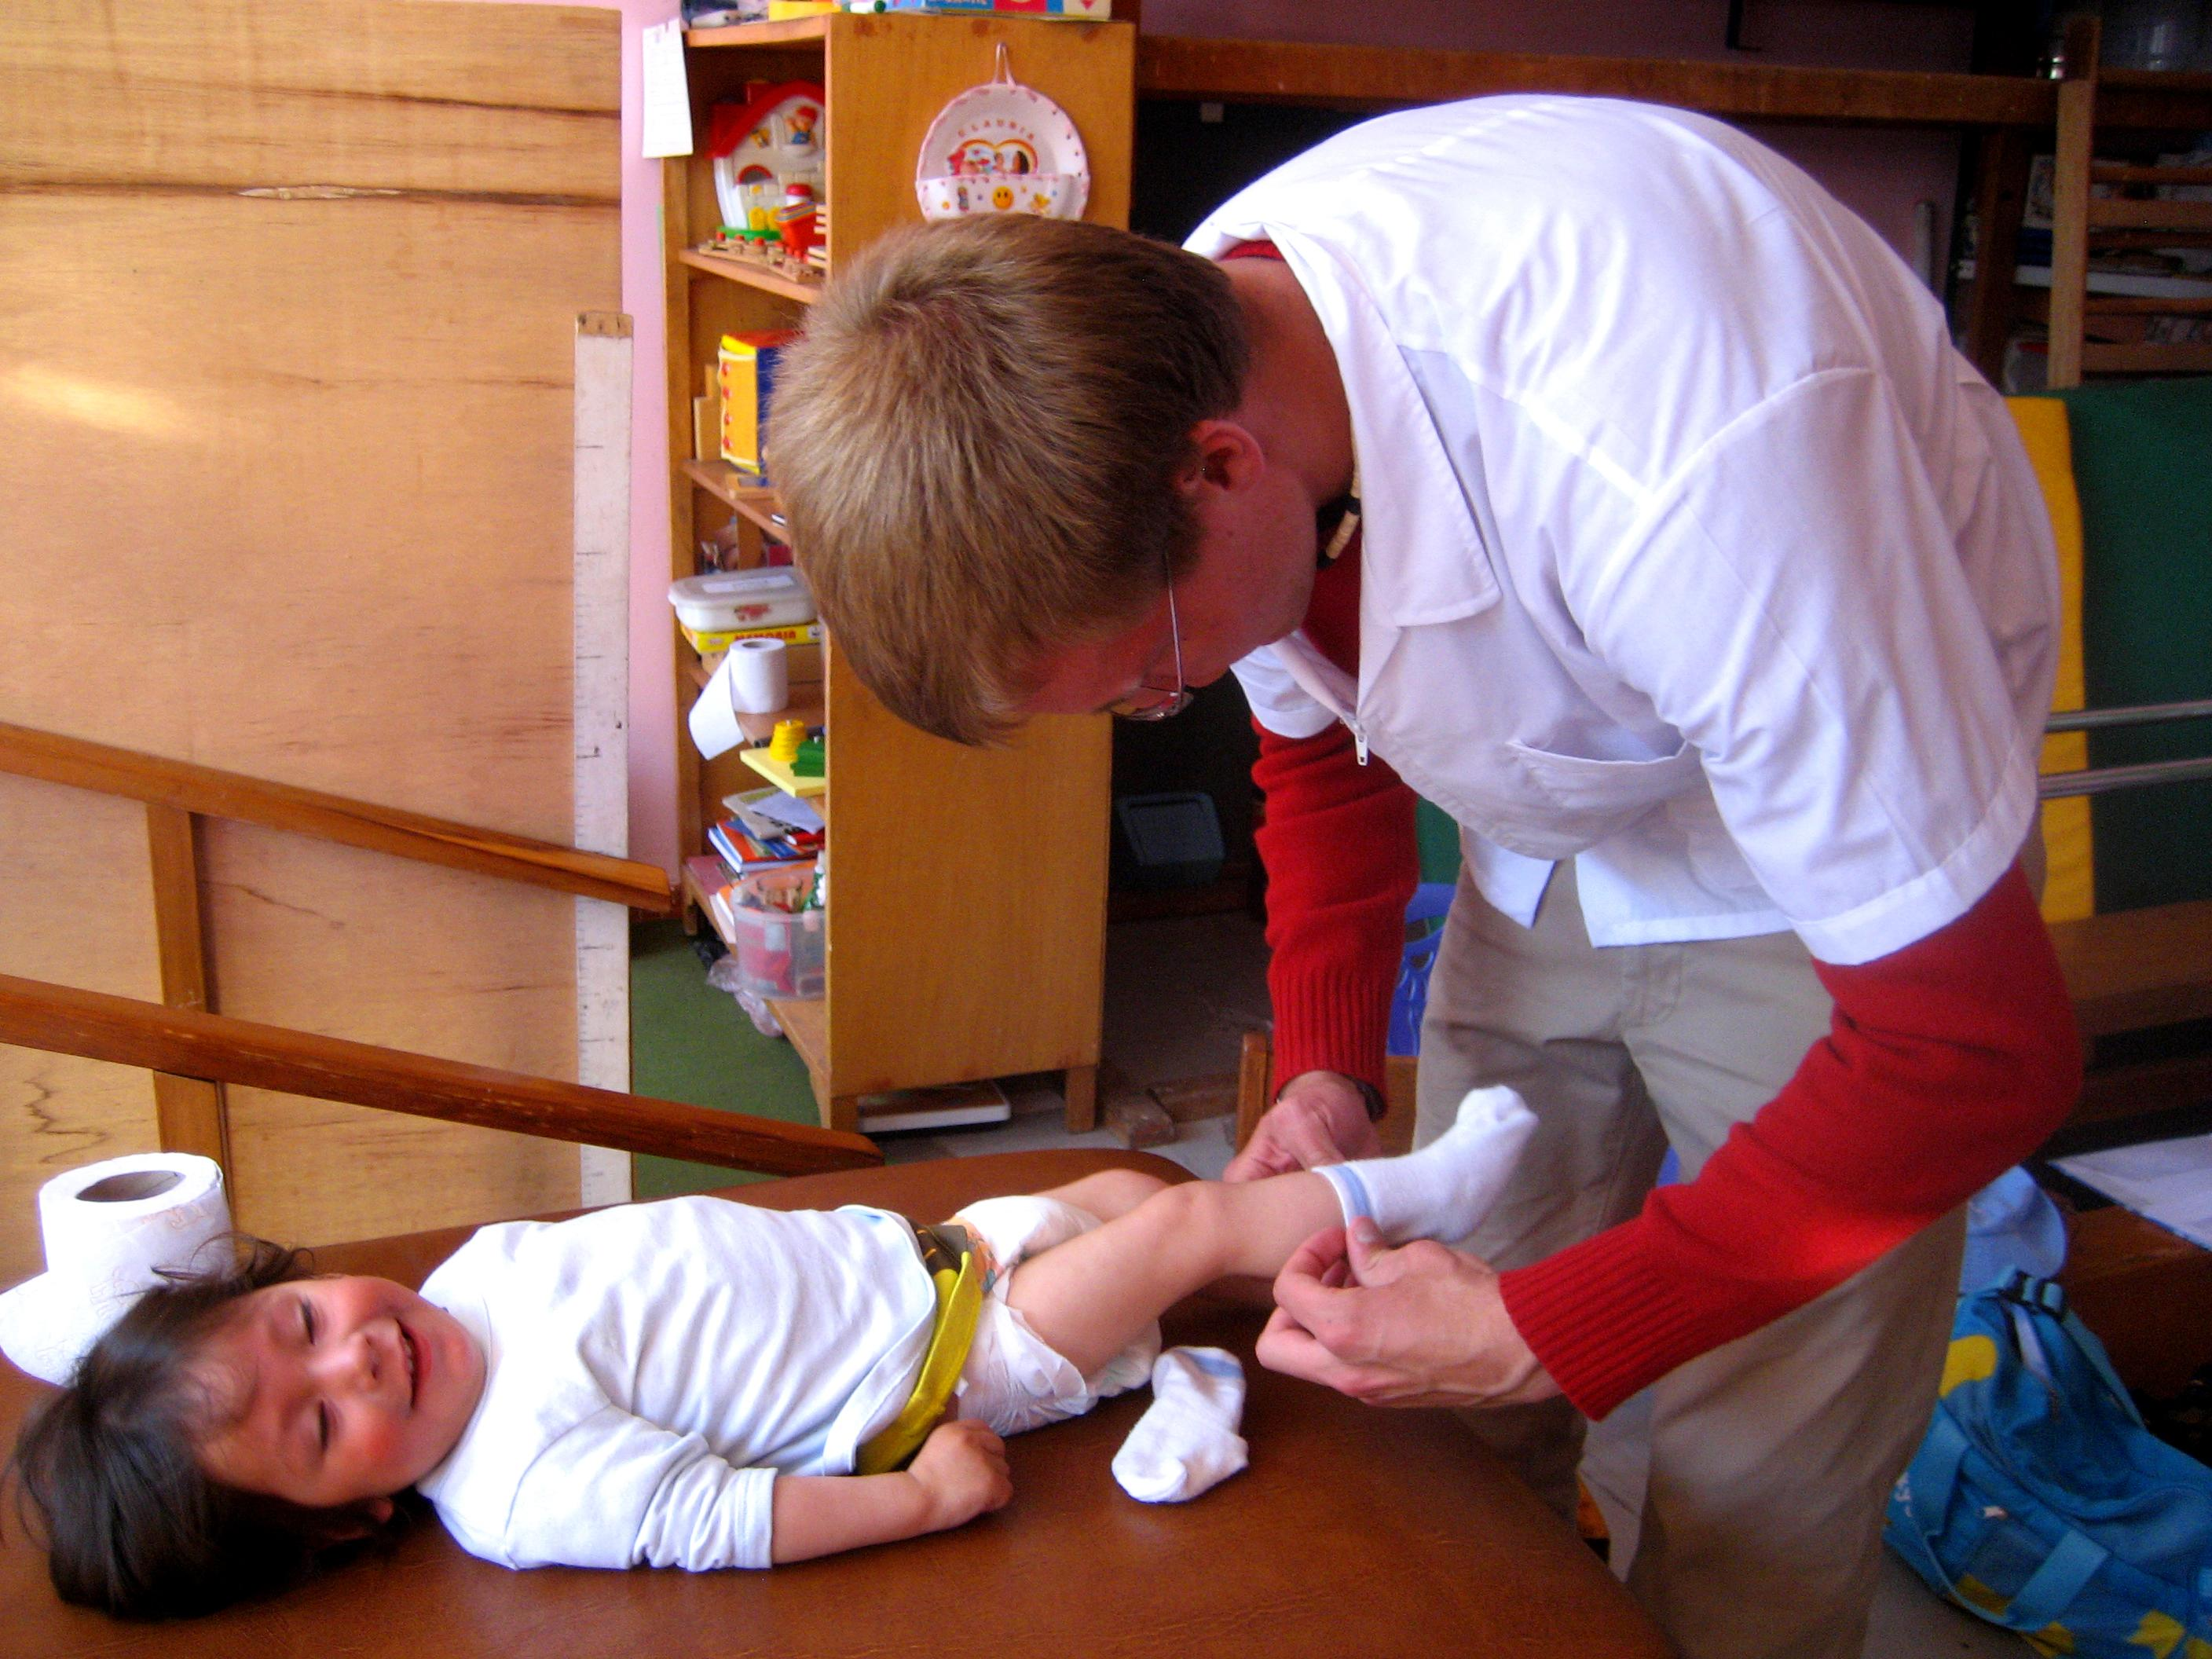 A male intern from Projects Abroad is pictured dressing a baby in new clothes as part of his midwifery internship in Peru.